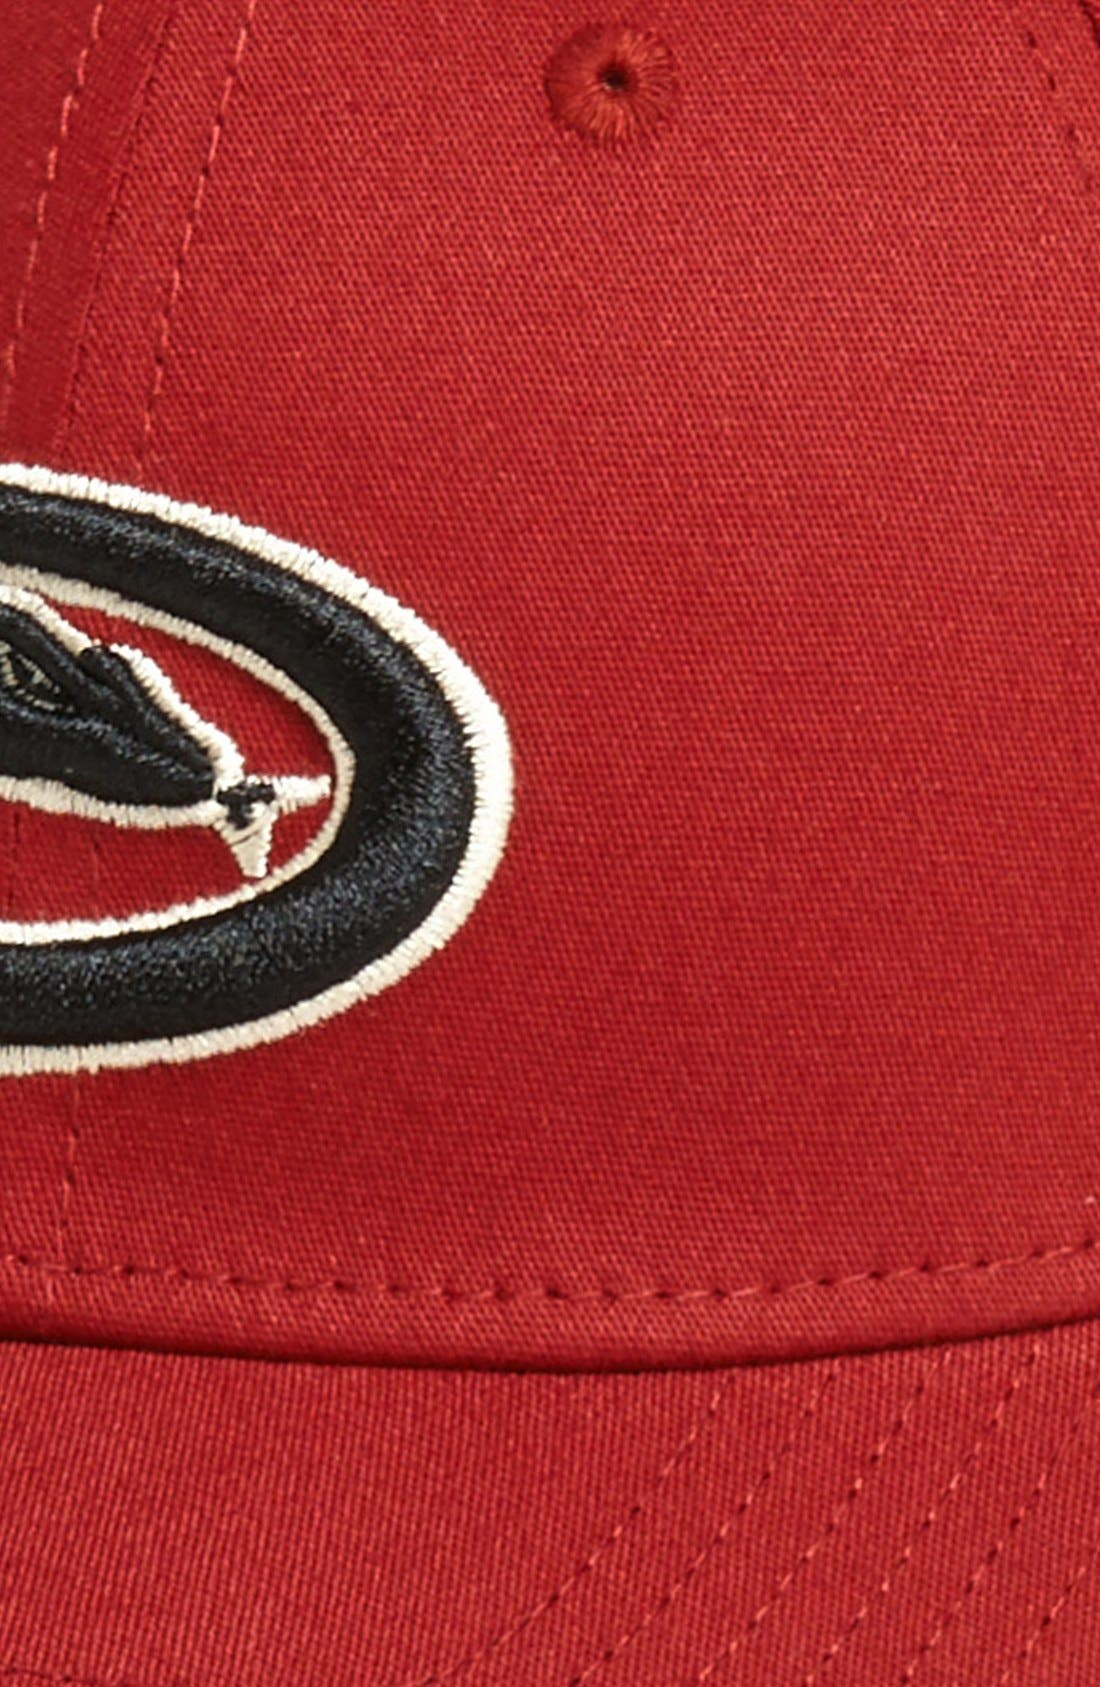 Alternate Image 2  - New Era Cap 'Arizona Diamondbacks - Tie Breaker' Baseball Cap (Big Boys)